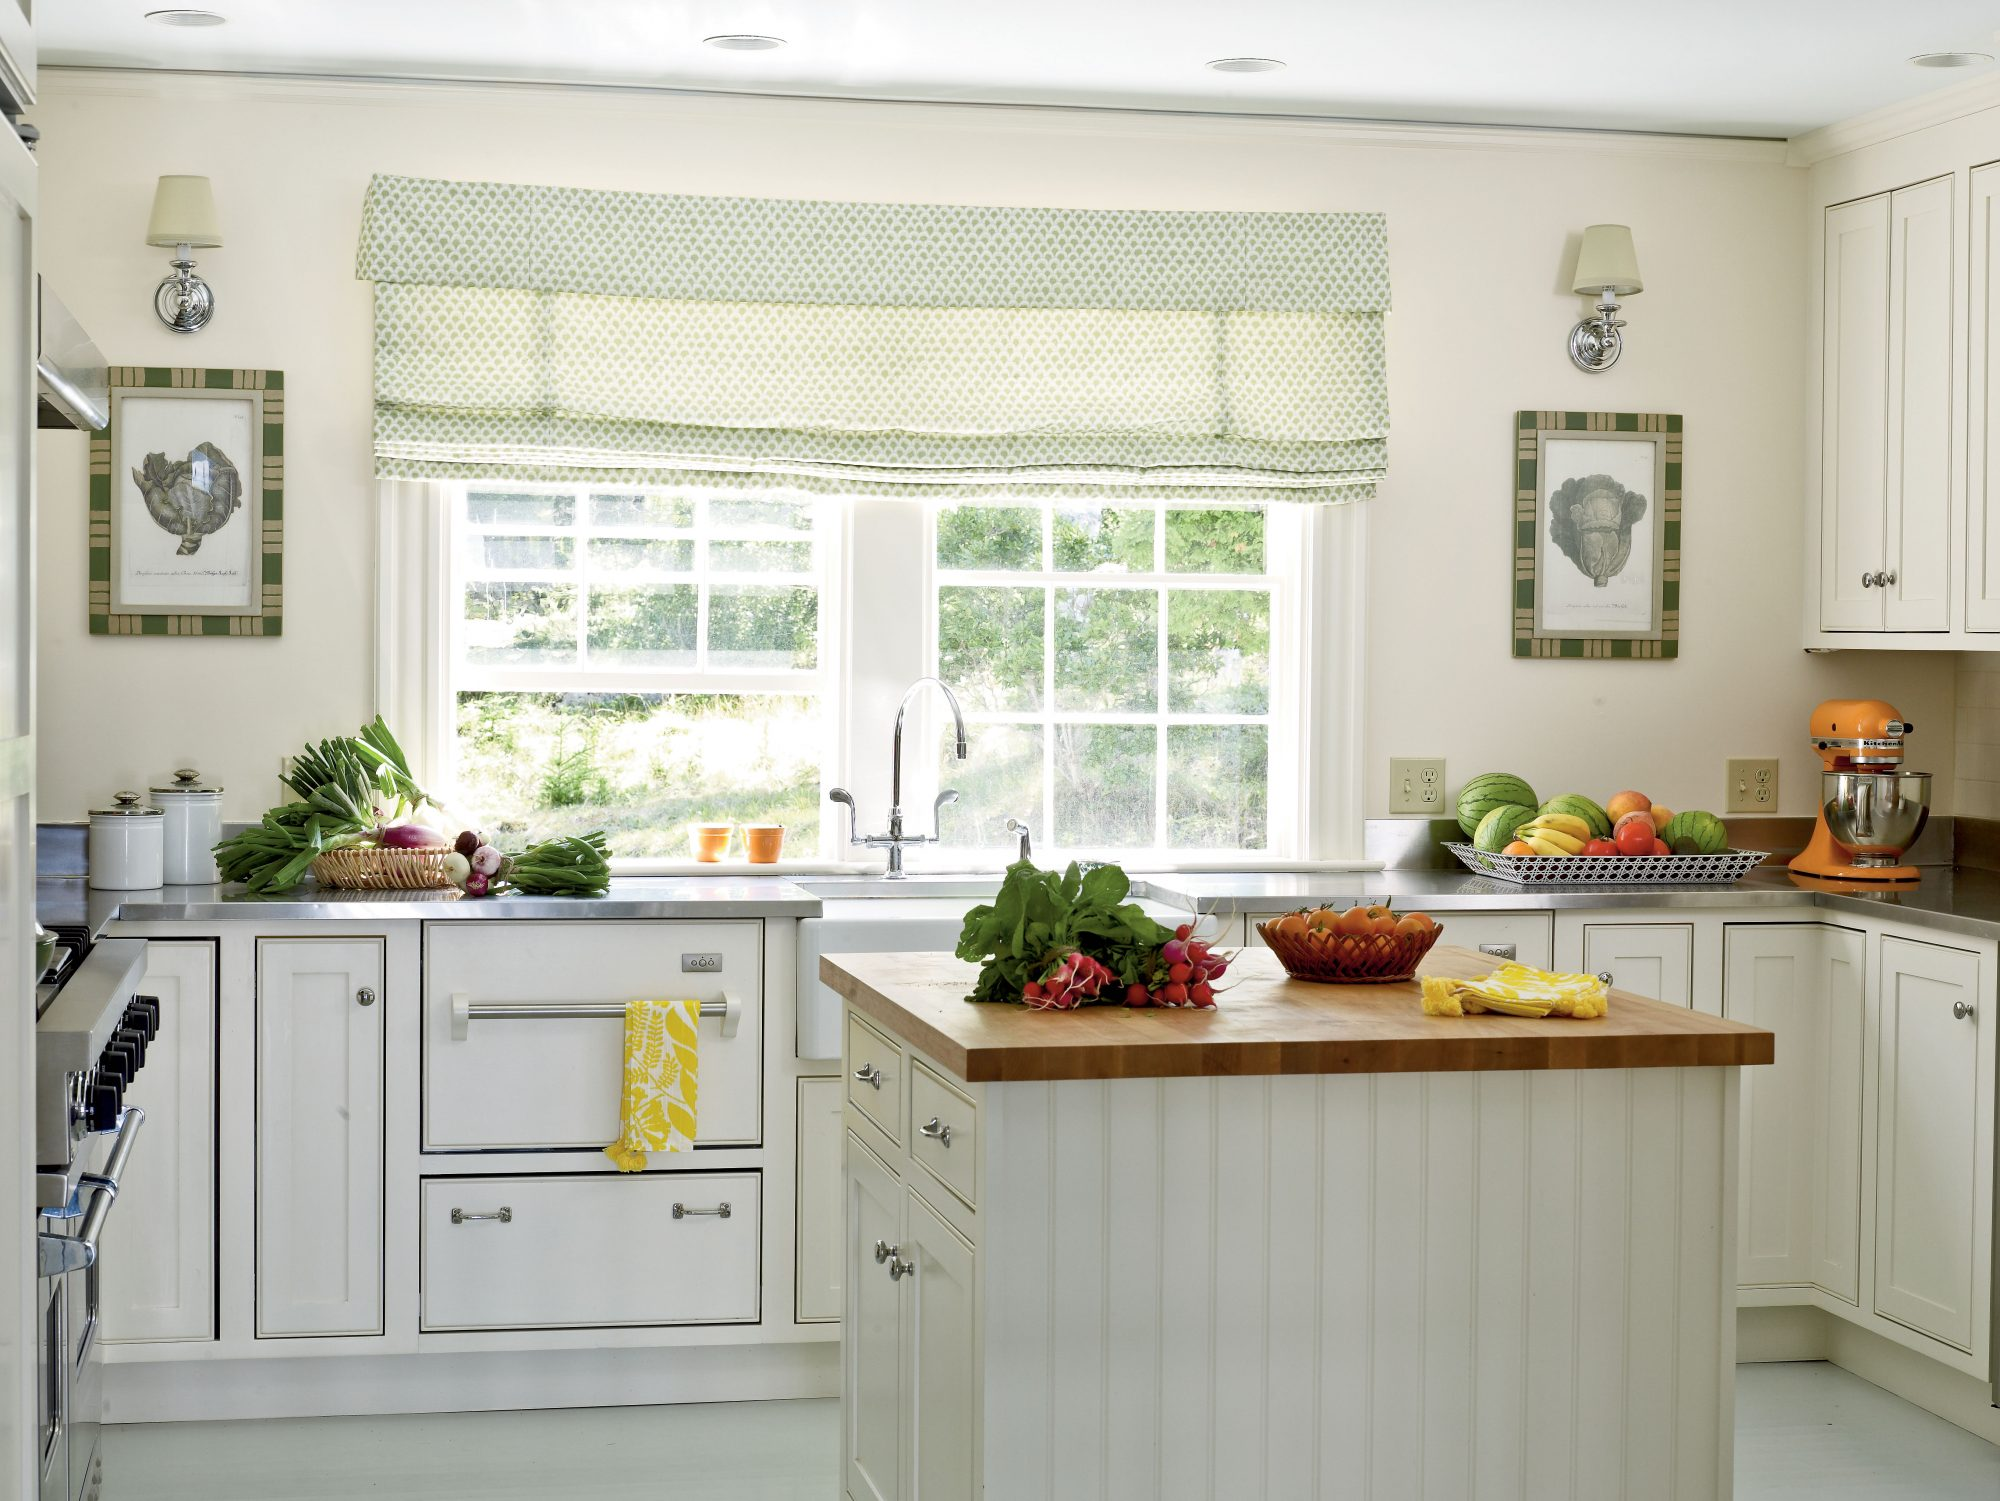 When you know you're going to be working overtime in the kitchen, simplify the design and let efficiency be your guide. A colorful mixer and a bright dish towel add cheerful color to this neutral space. Such details as twin sconces lend charm.